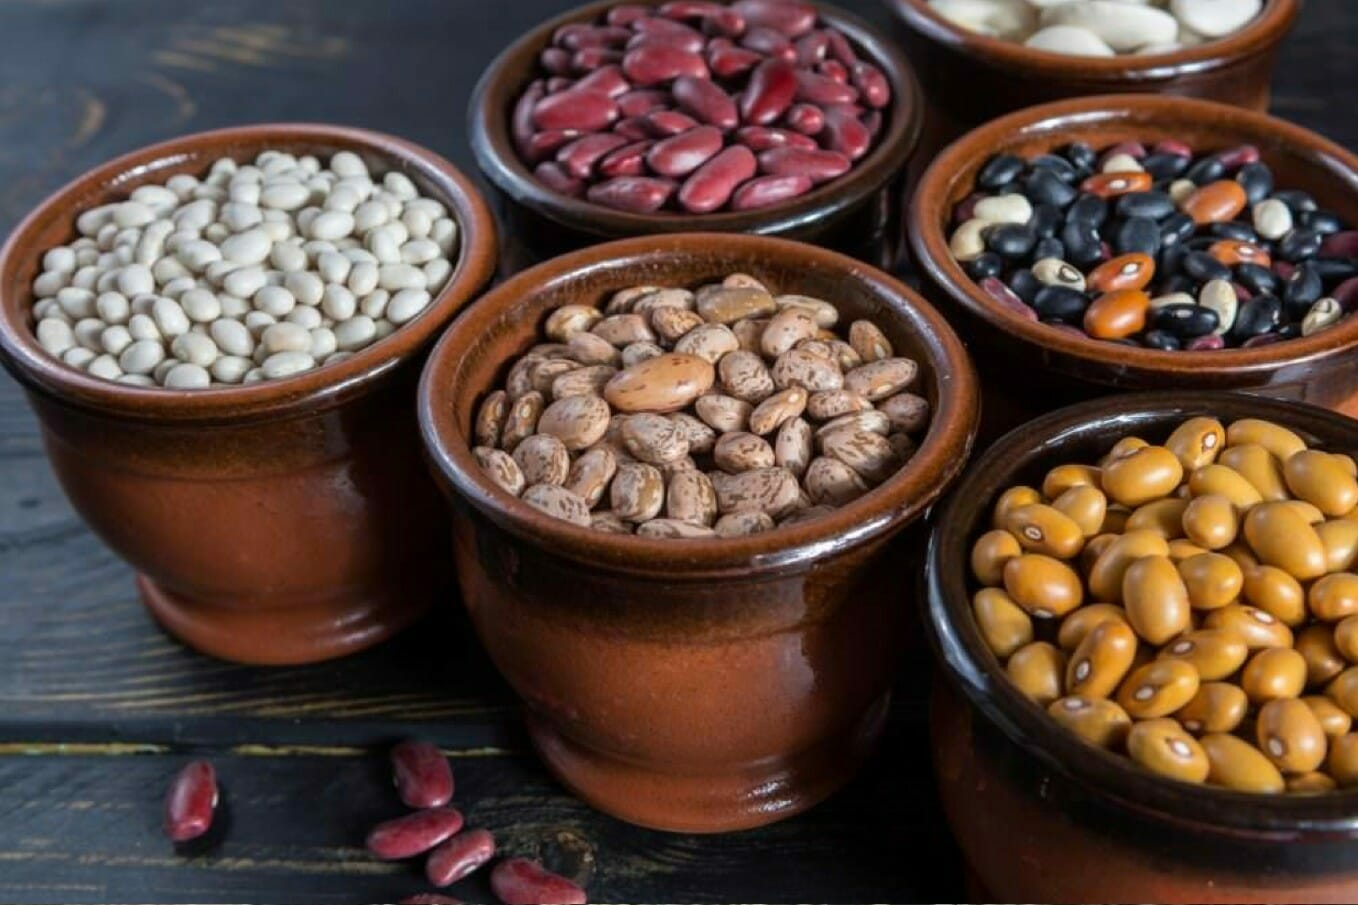 The Spiceworks Dried Beans